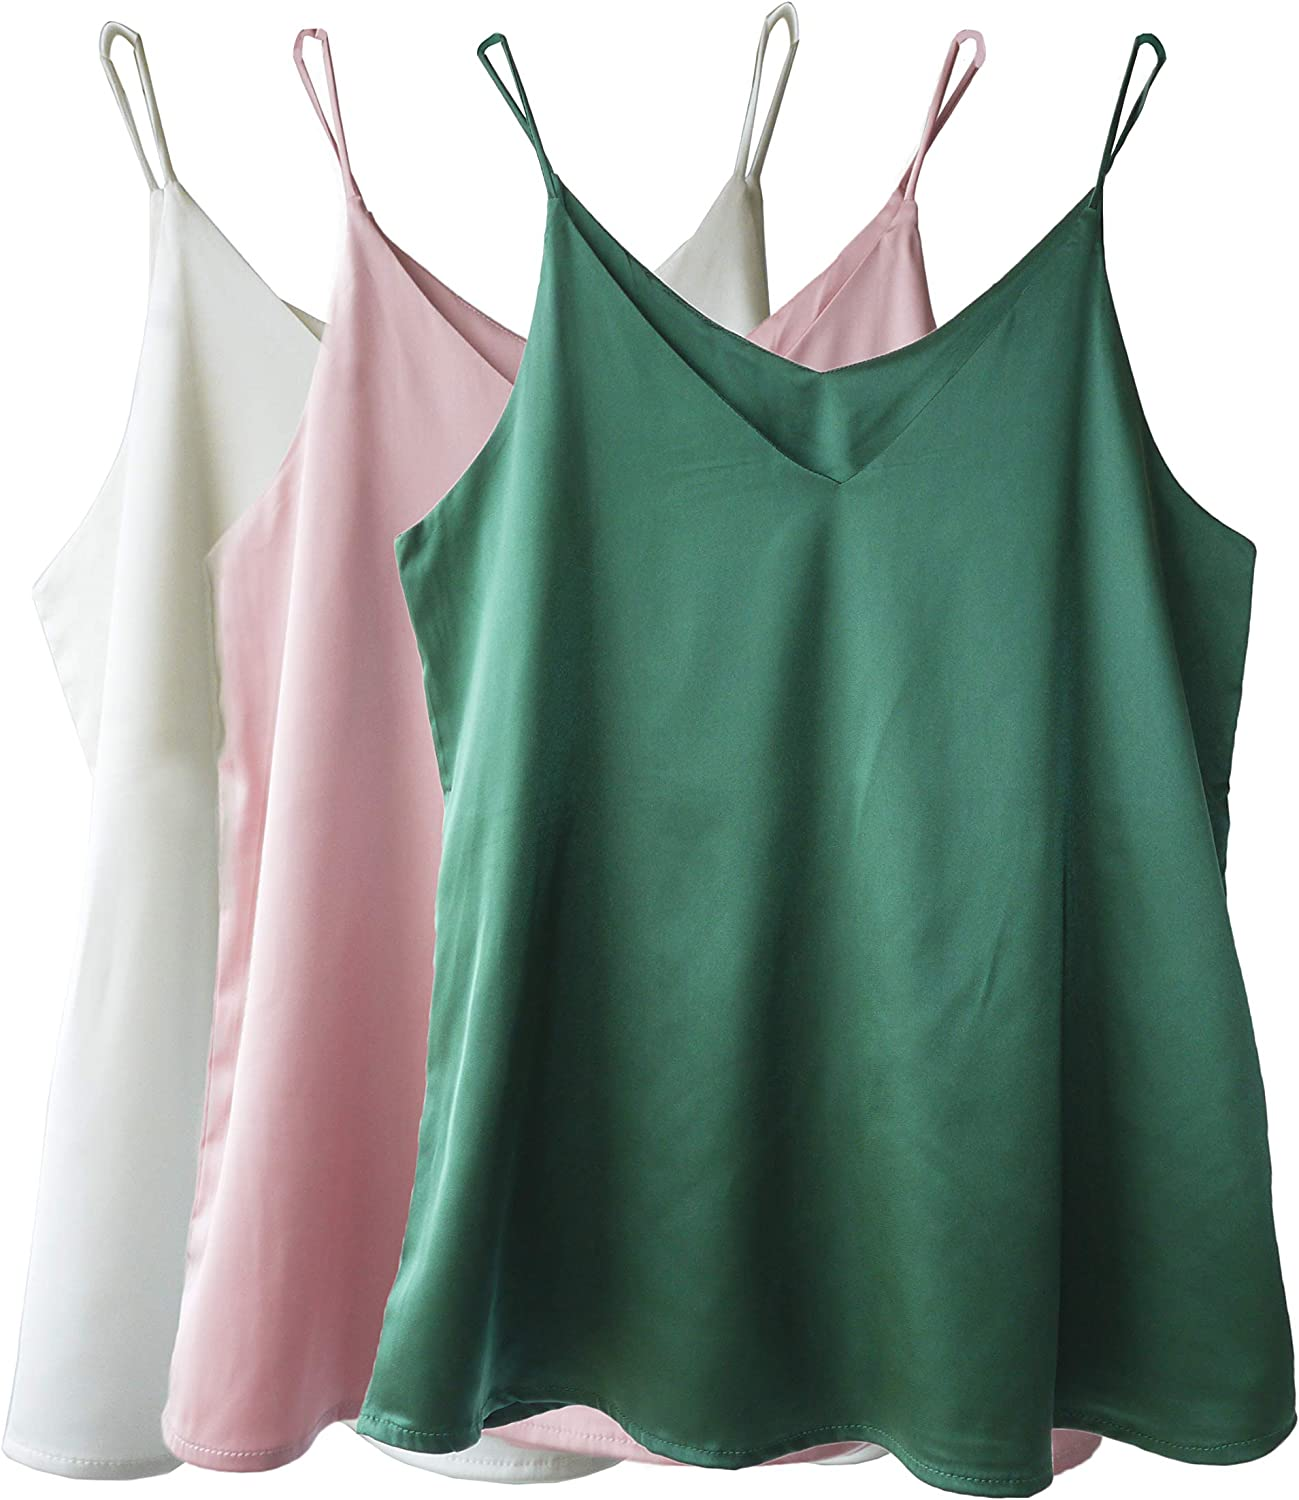 Wantschun Womens Silk Satin Camisole Cami Plain Strappy Vest Top T-Shirt Blouse Tank Shirt V-Neck Spaghetti Strap XXS-4XL at  Women's Clothing store